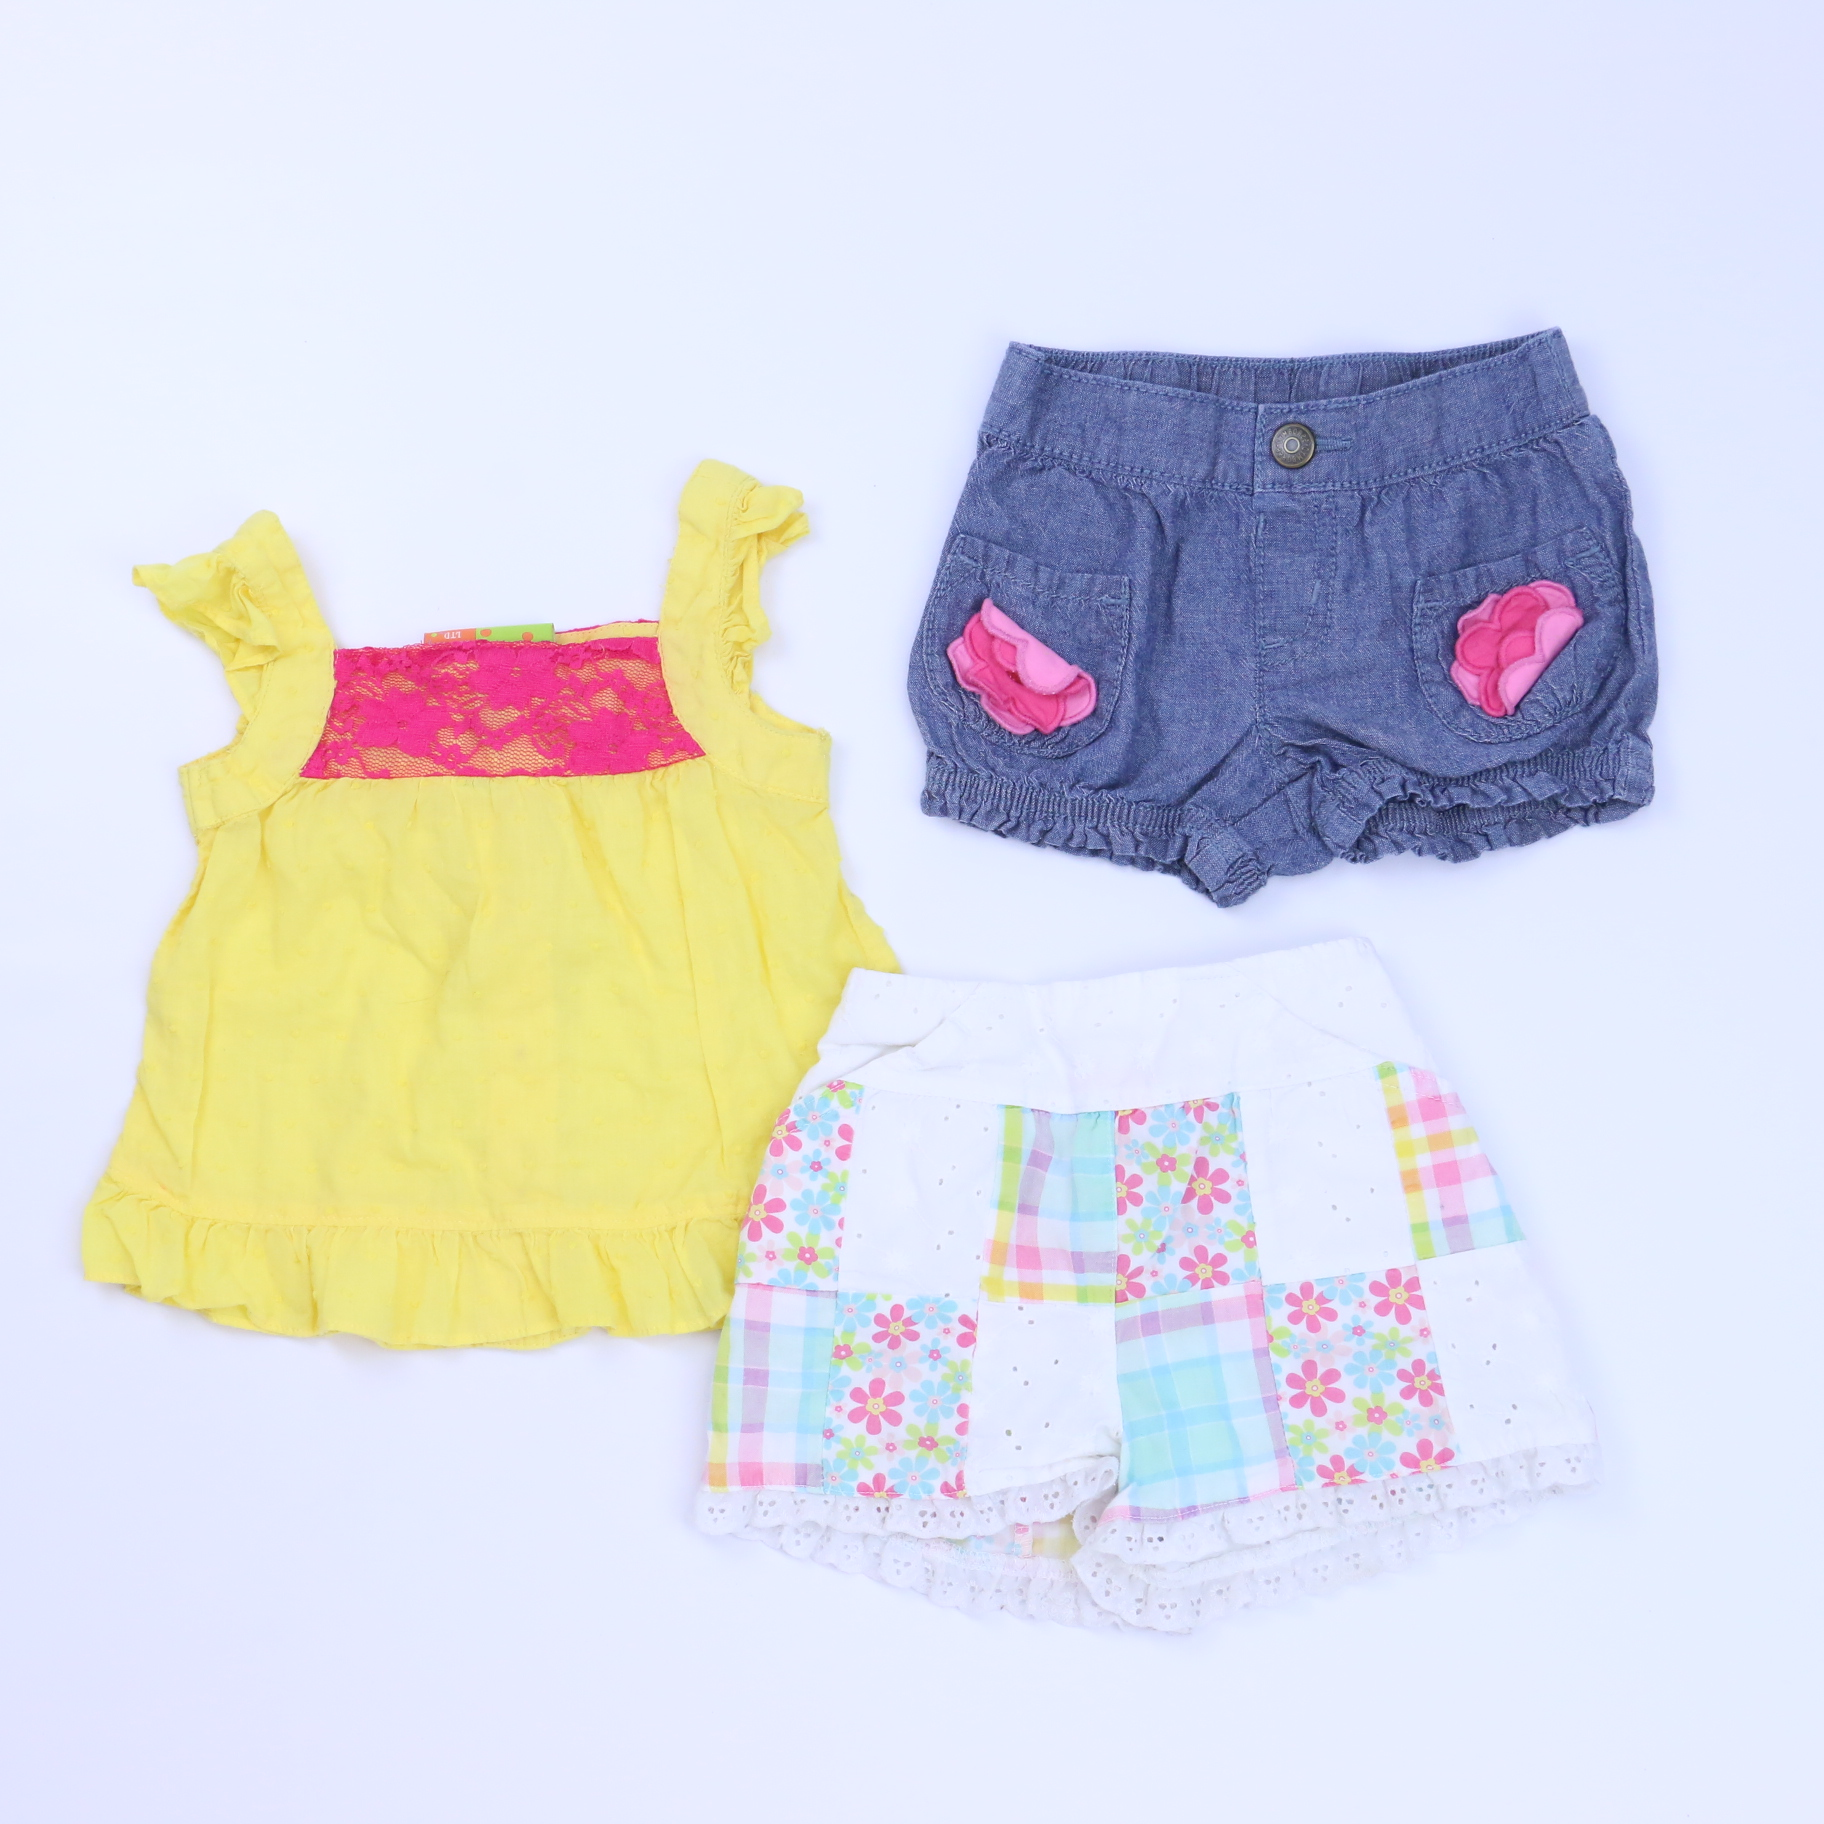 a00d682ca 3-pieces Apparel Sets size  2T - The Swoondle Society